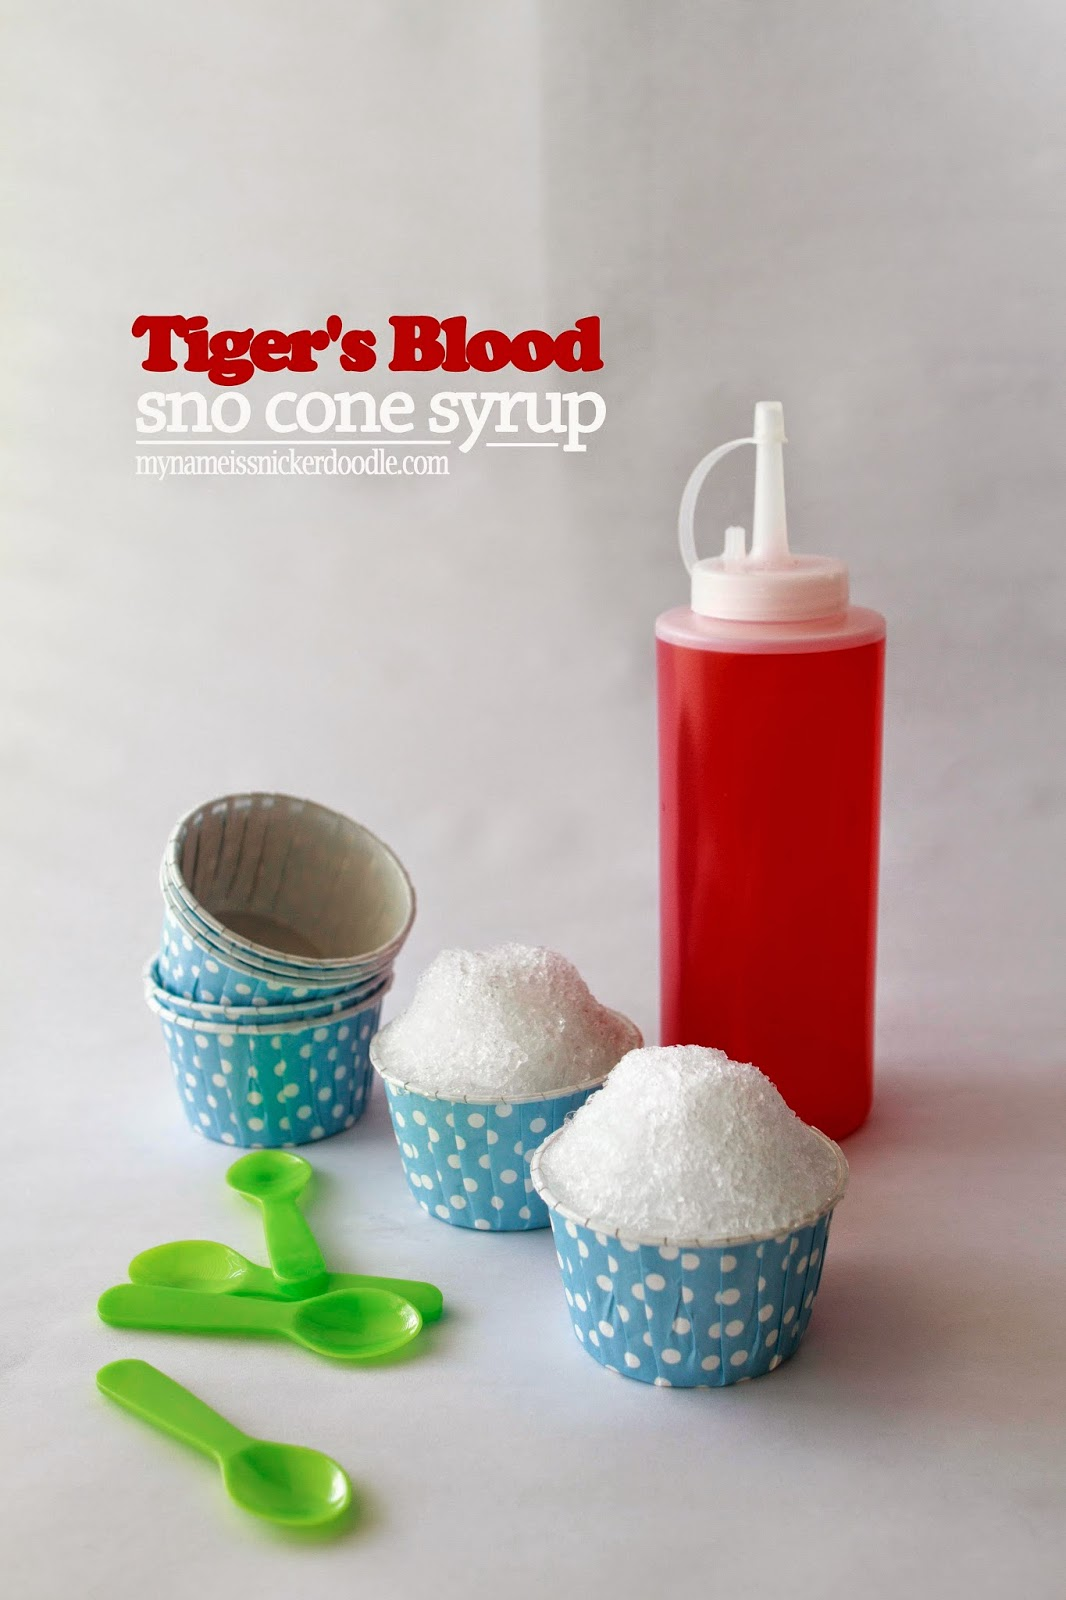 Tiger's Blood Sno Cone Syrup | mynameissnickerdoodle.com